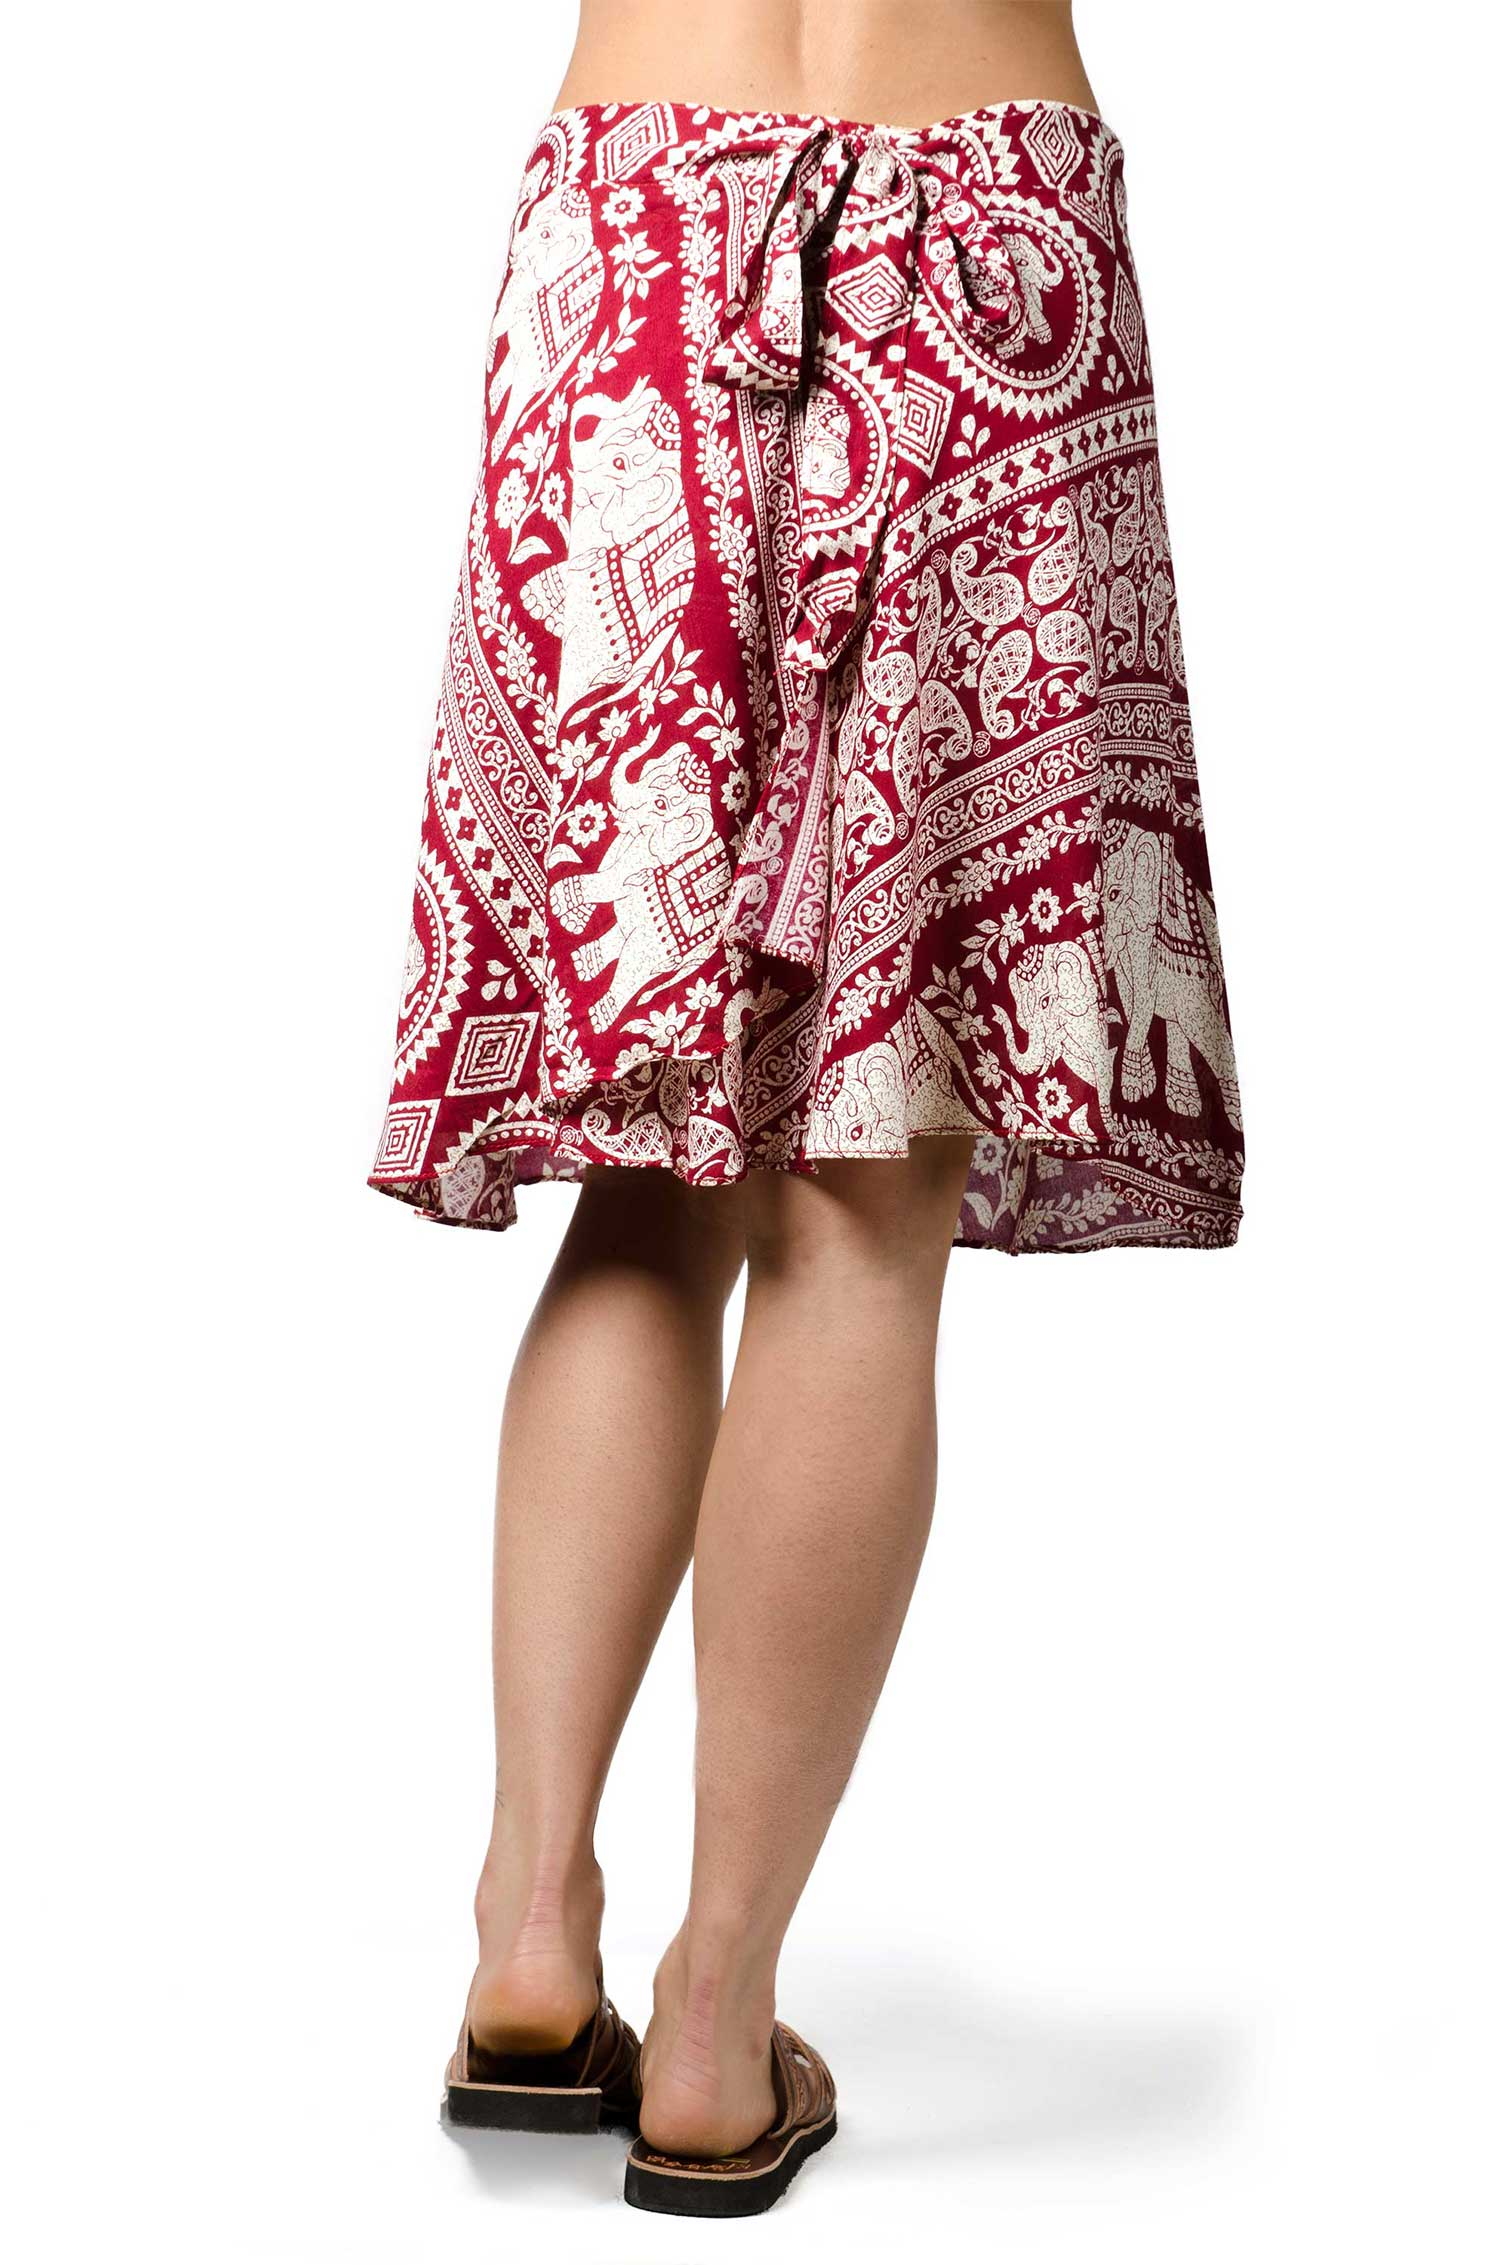 Elephant Print Short Wrap Skirt - Red